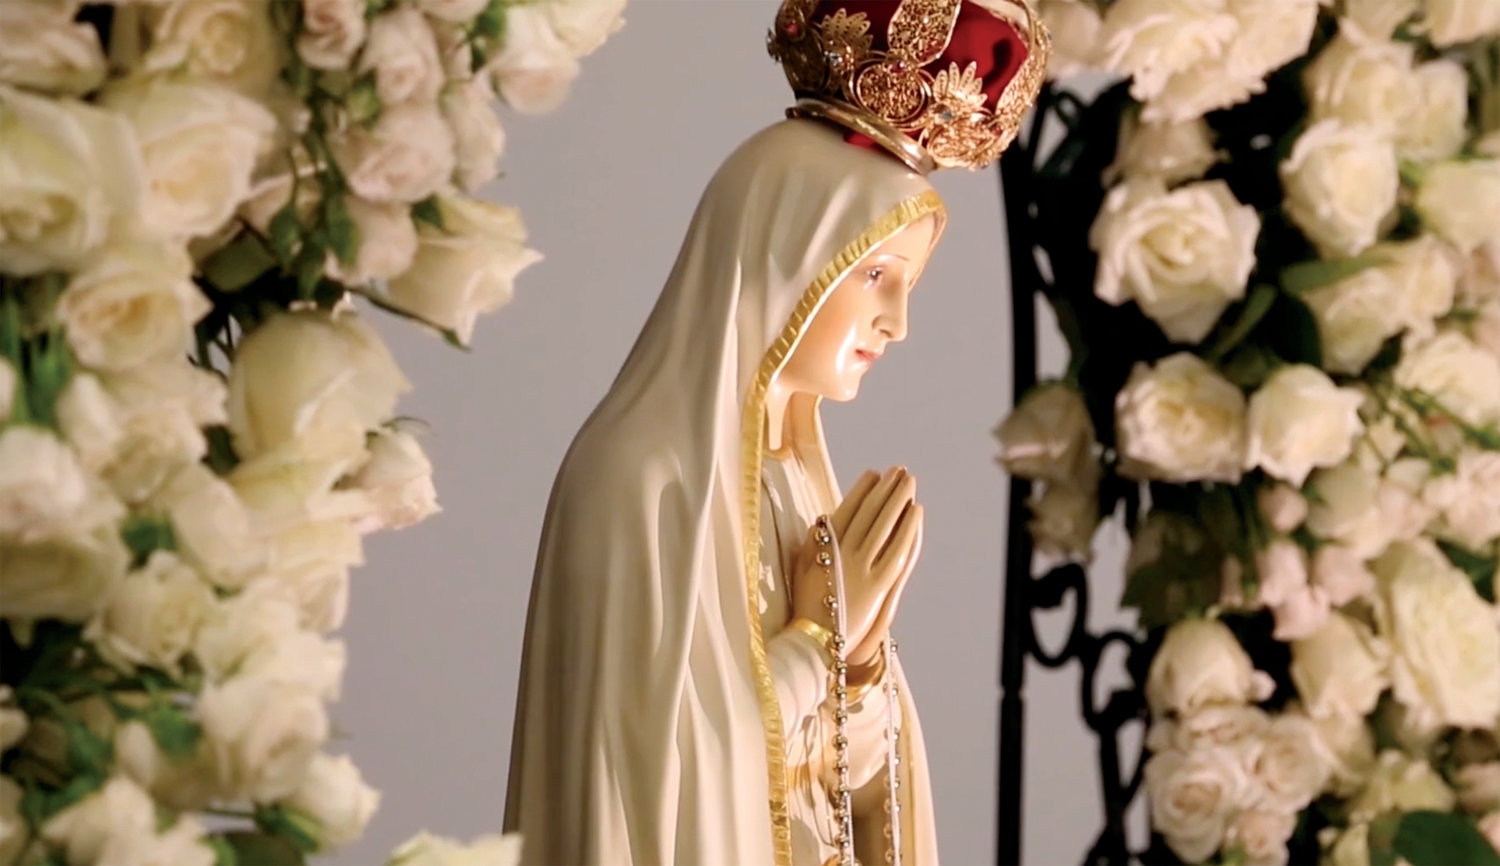 The International Pilgrim Virgin Statue of Fatima is scheduled to visit St. Mary's Church in Paris Tuesday, March 19. Sculpted in 1947, The statue is traveling during the month of March in the Springfield diocese. The public can visit the statue any time after 8 a.m. Tuesday.